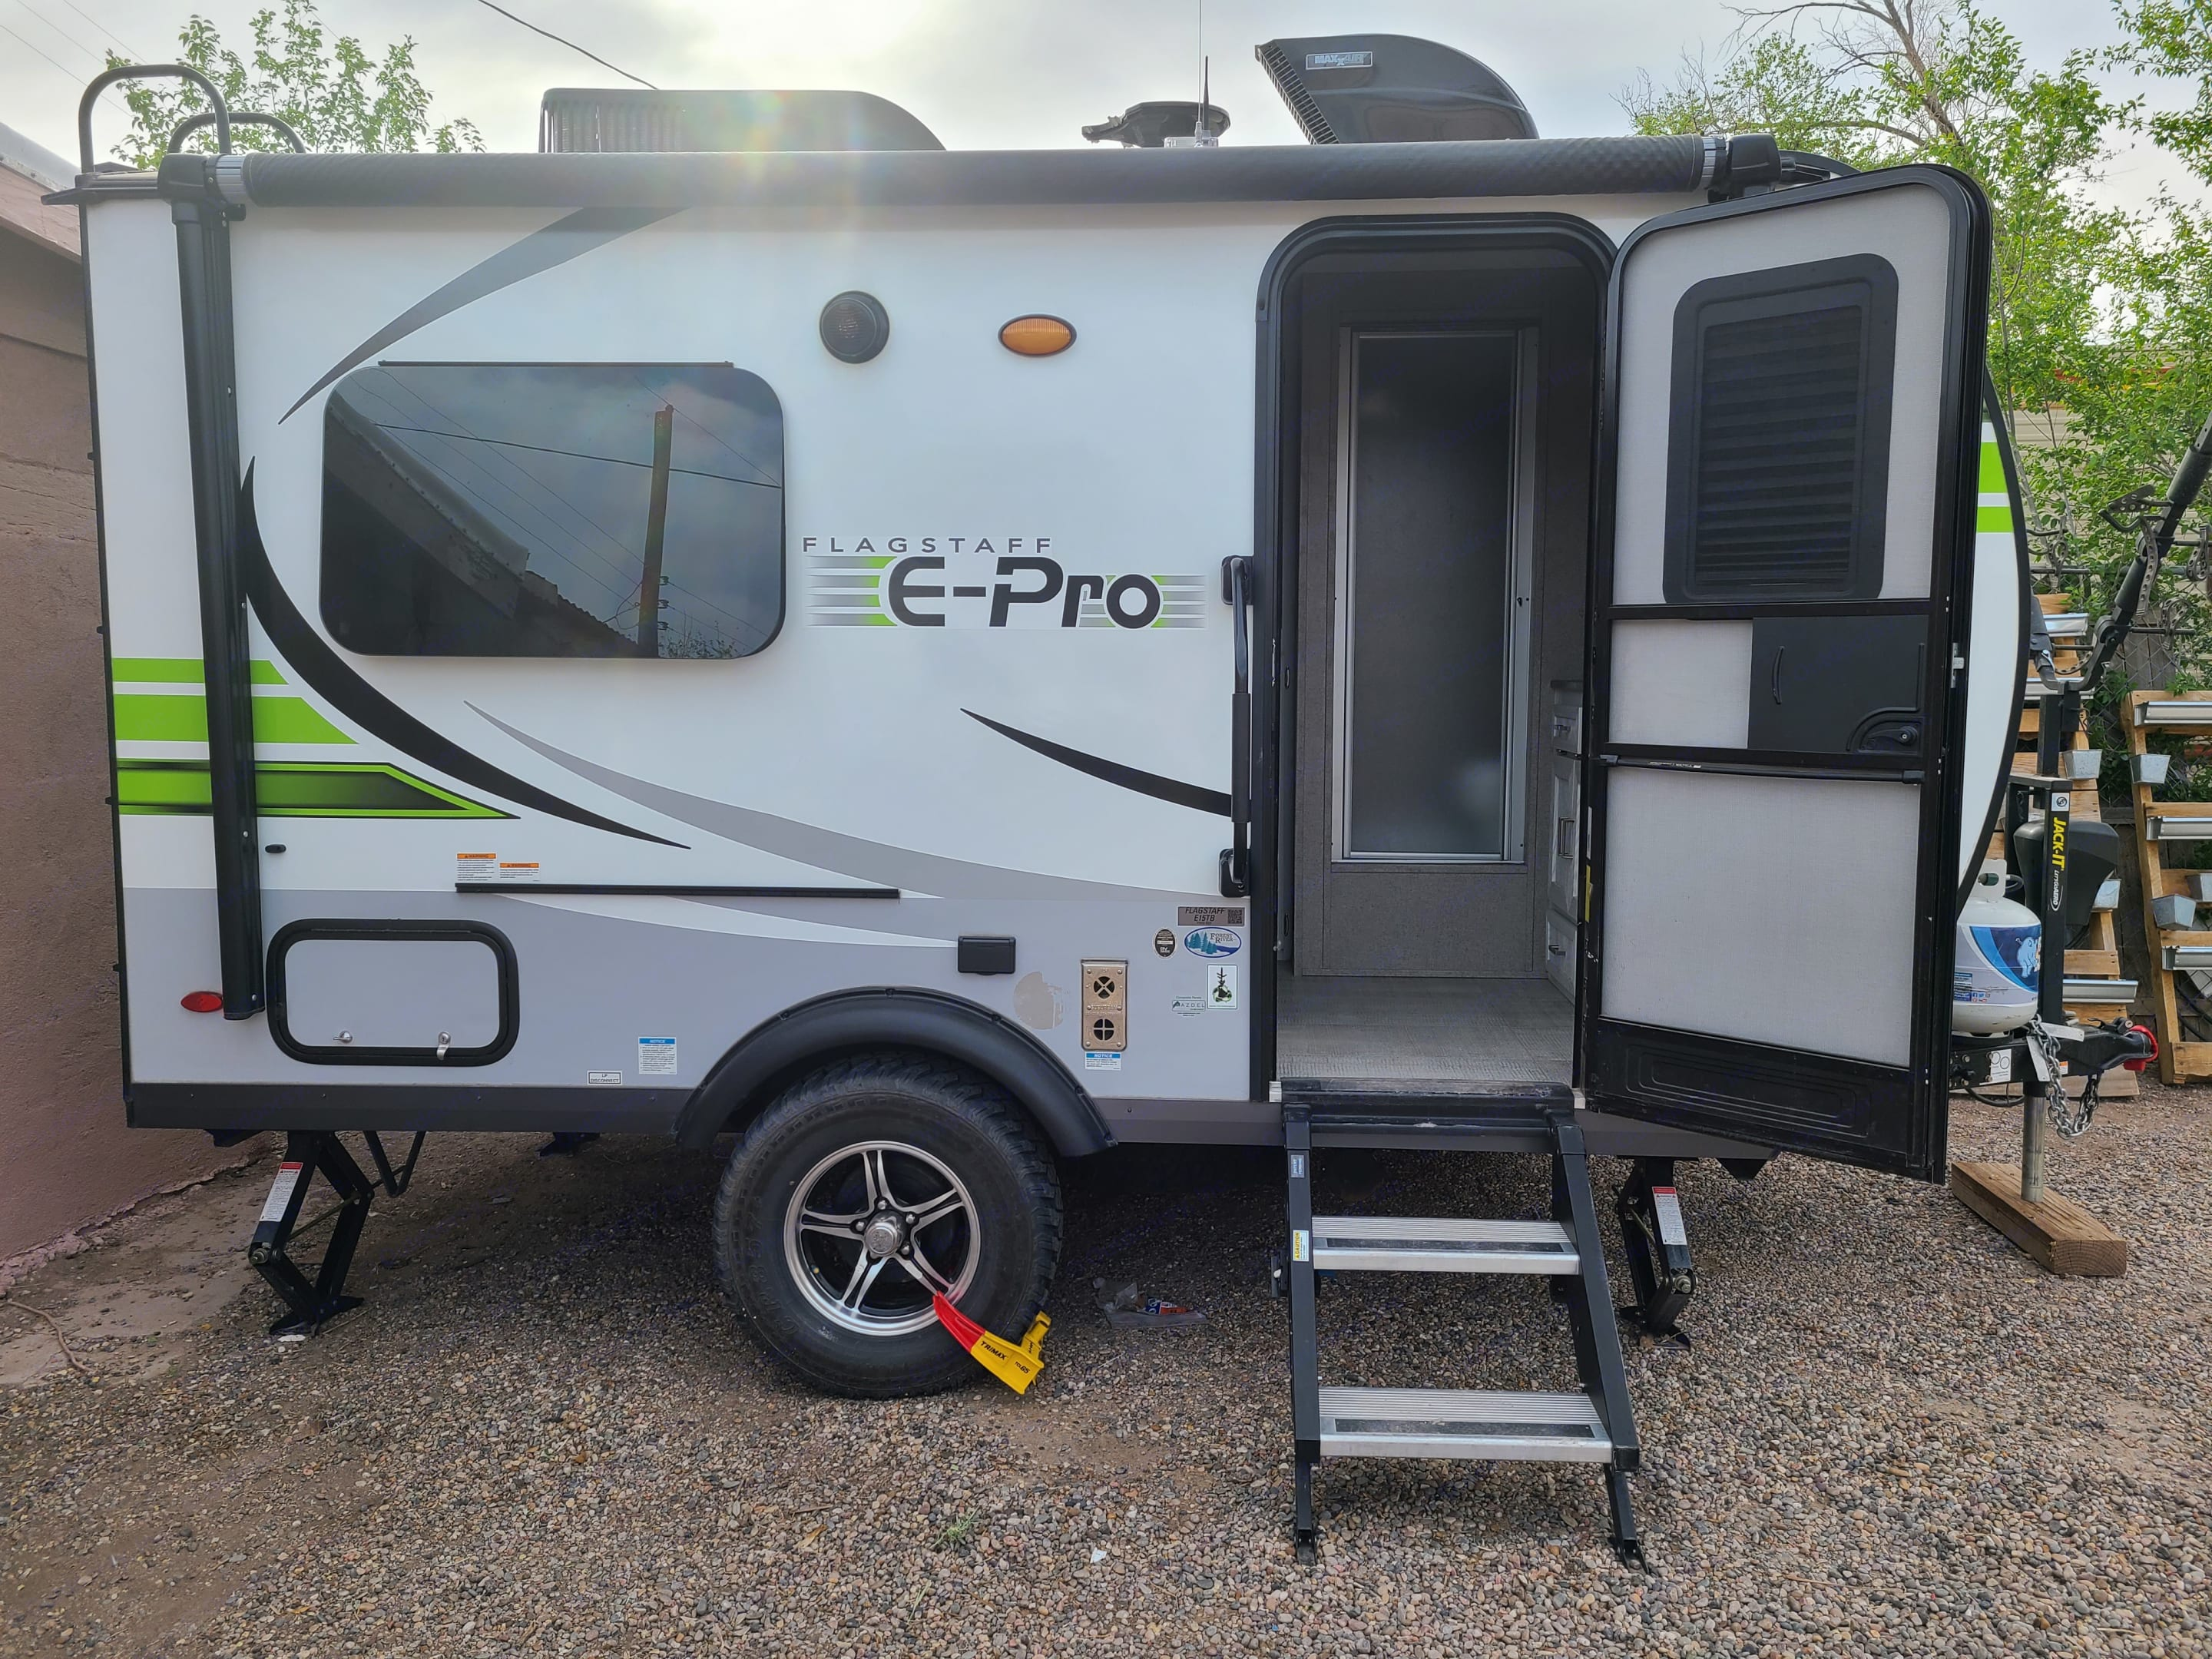 The 2020 E-pro with offroading package, bike rack, and complete off-grid capabilities including a hot water heater and outdoor shower.. Flagstaff E-Pro 2020